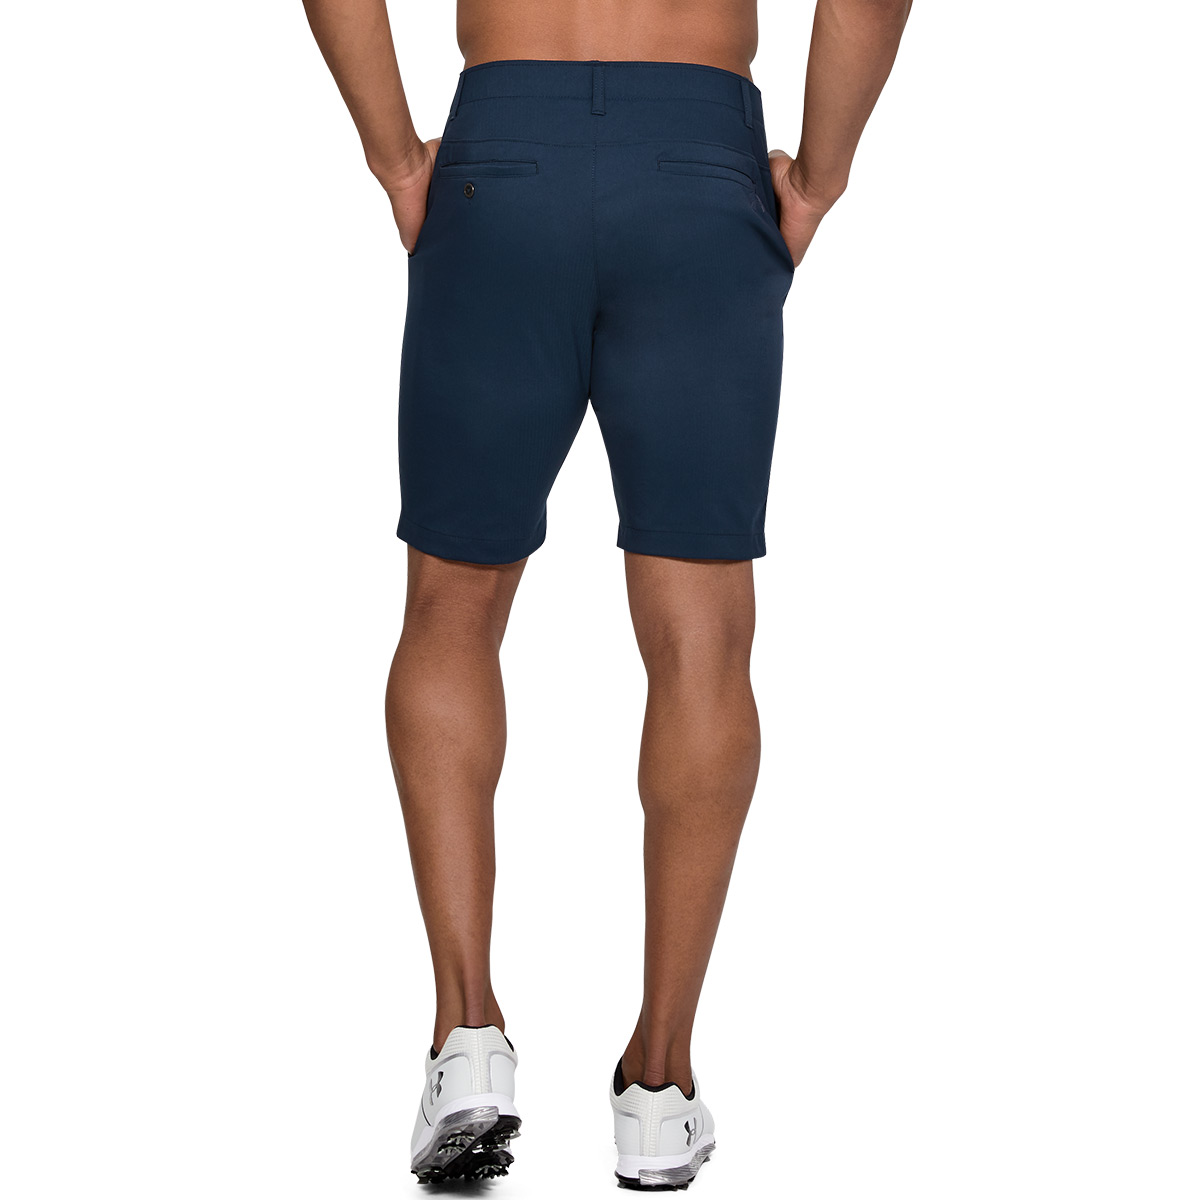 Under-Armour-Mens-Takeover-Taper-Mid-Length-Golf-Shorts-42-OFF-RRP thumbnail 3